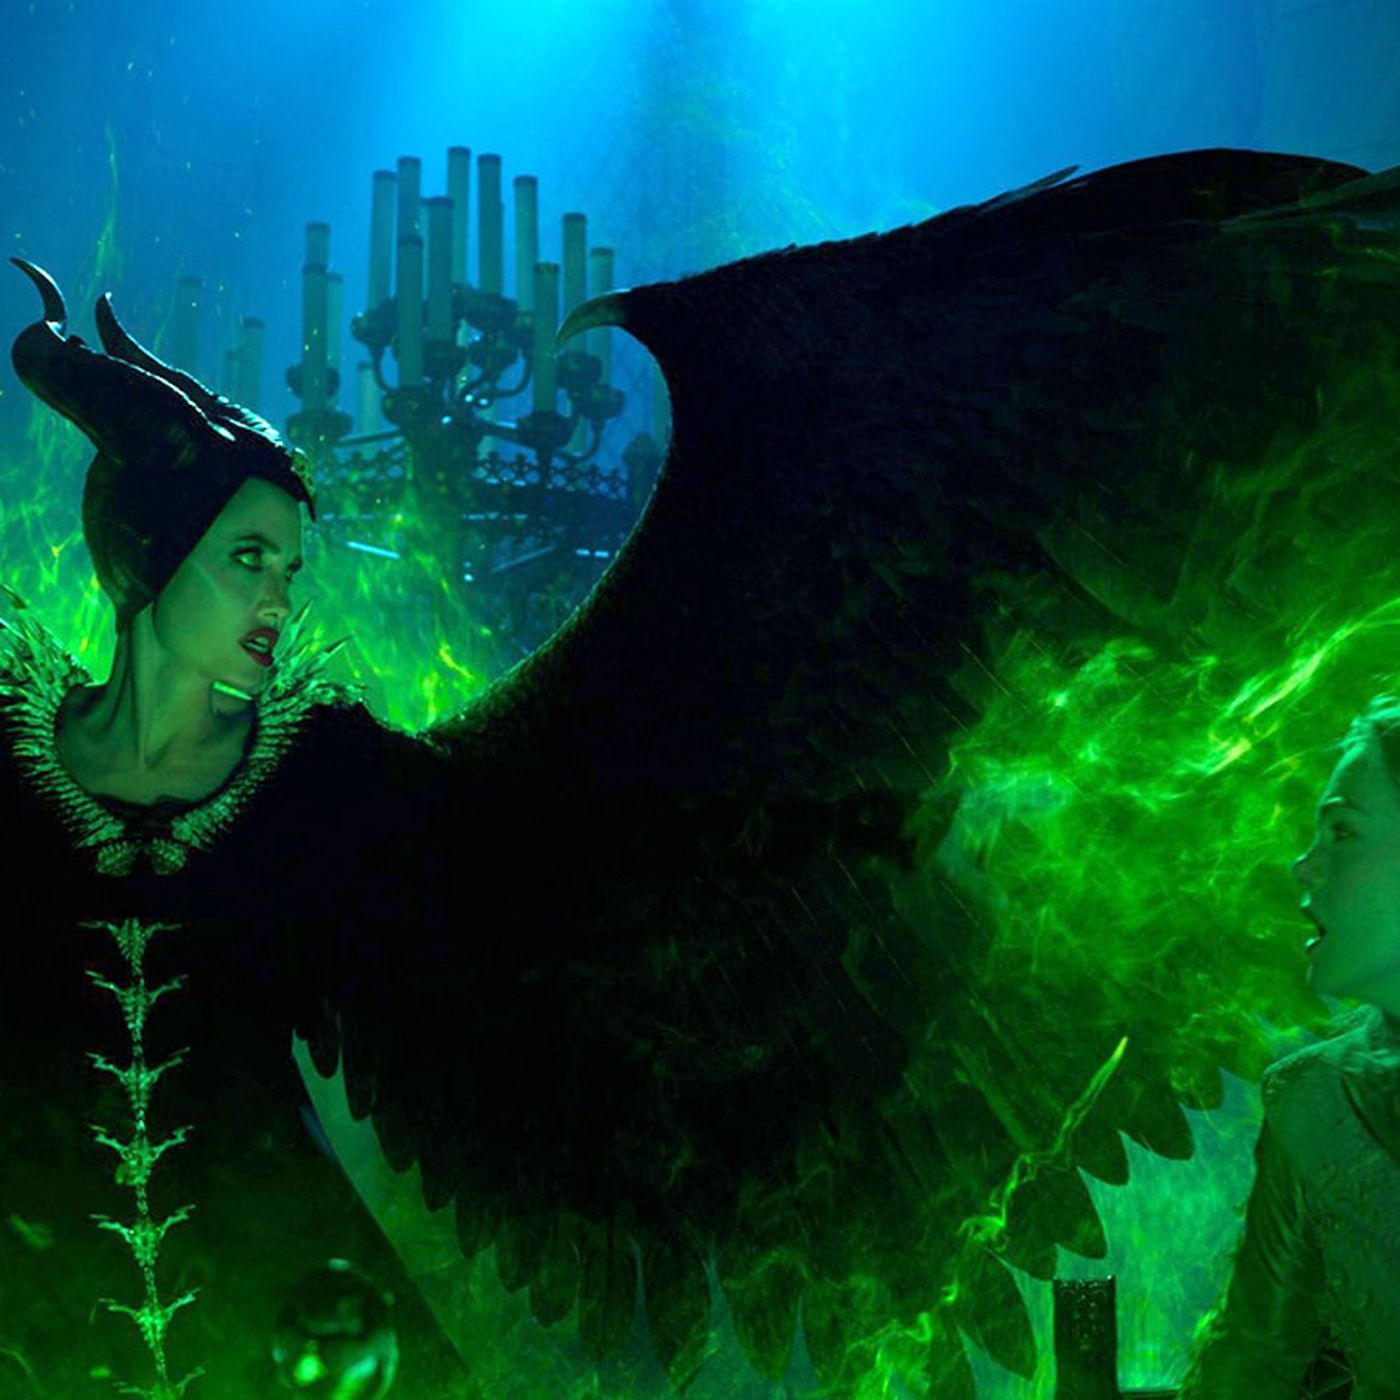 New Trailers Mulan Maleficent Mistress Of Evil Another